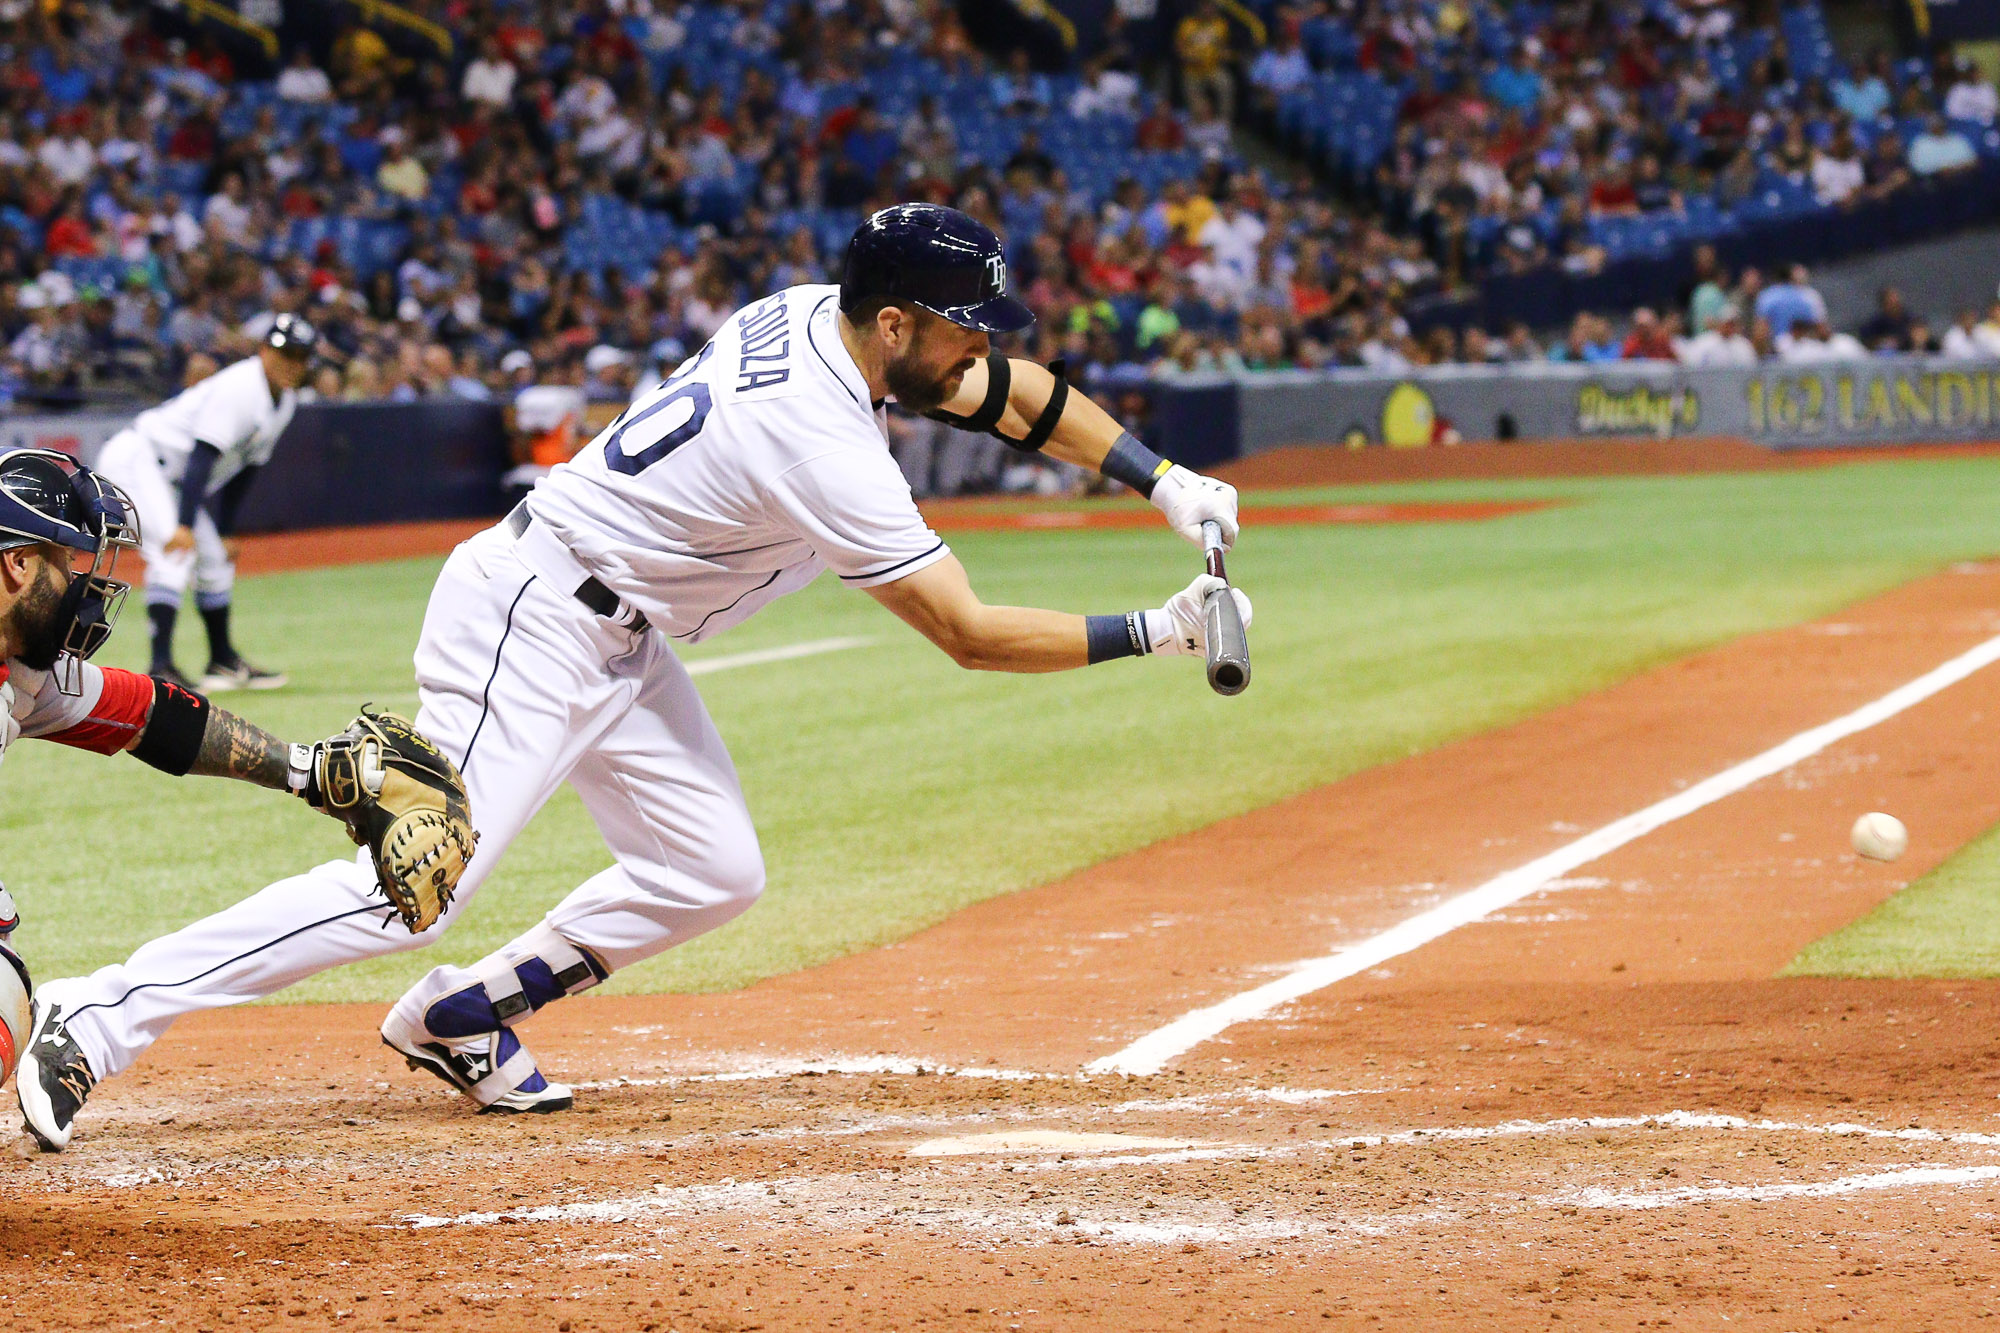 Souza tries bunting his way aboard in the Rays' loss./ANDREW J. KRAMER